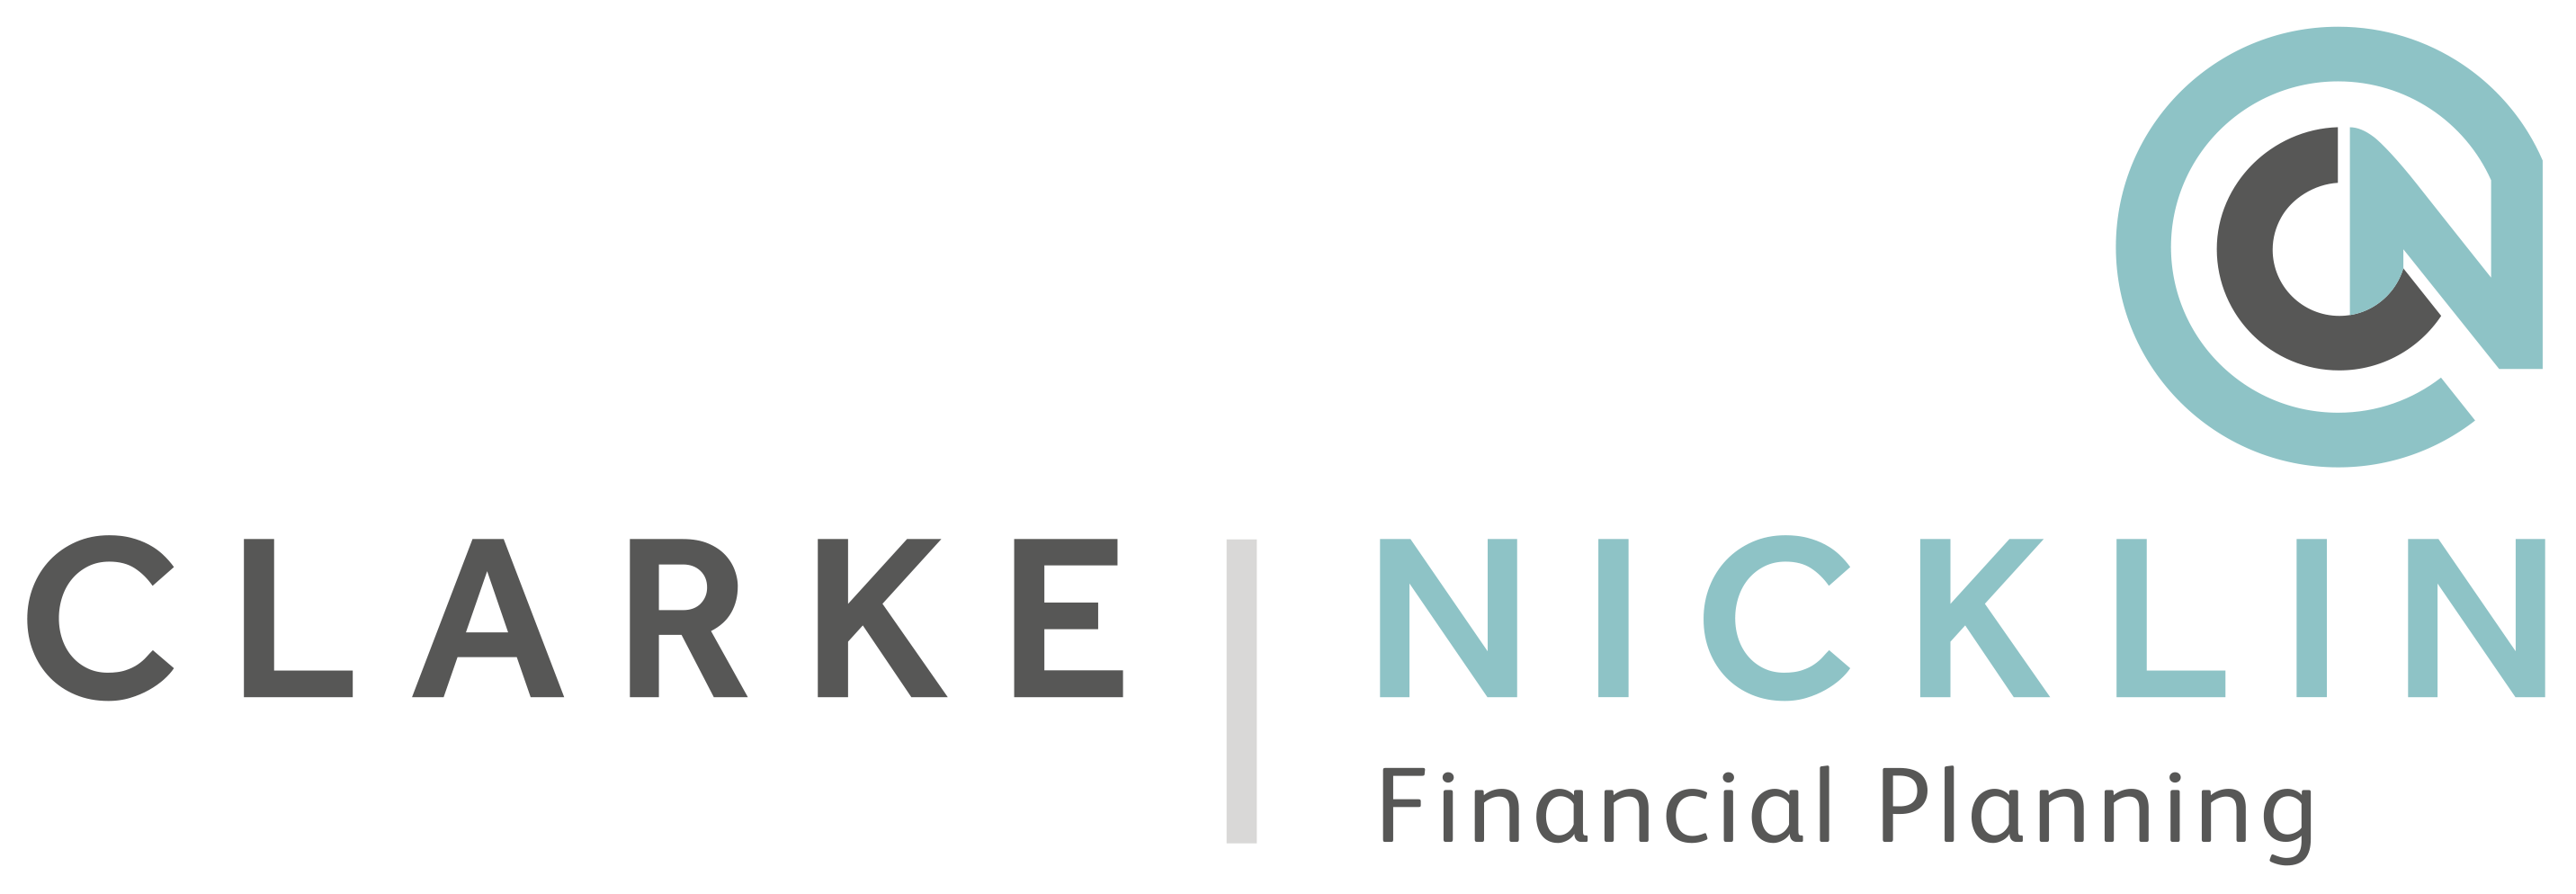 Clarke Nicklin Financial Planning Logo